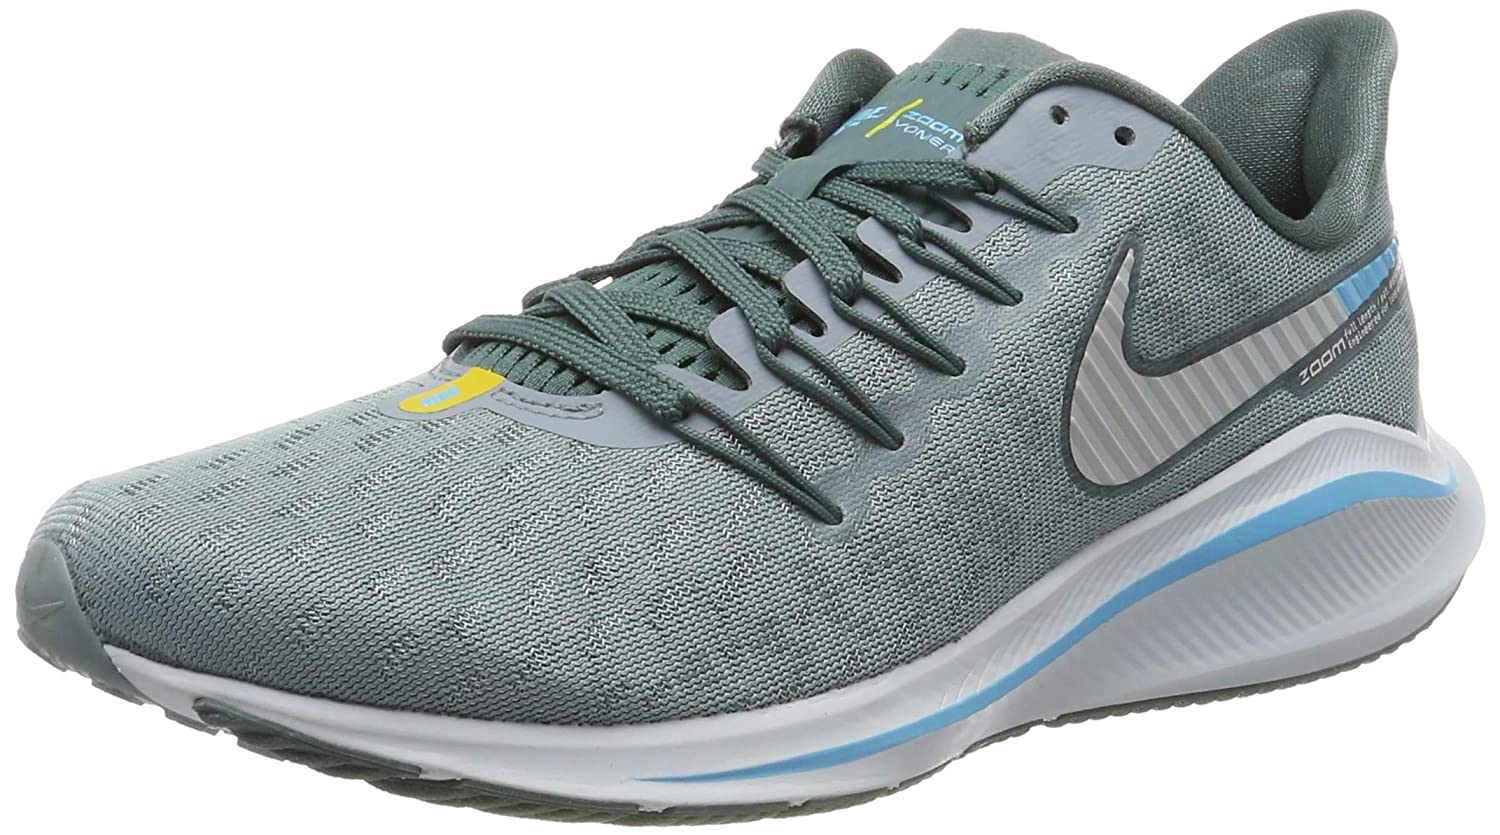 65a898e5 Amazon.com | Nike Air Zoom Vomero 14 Mens Running Shoes | Road Running